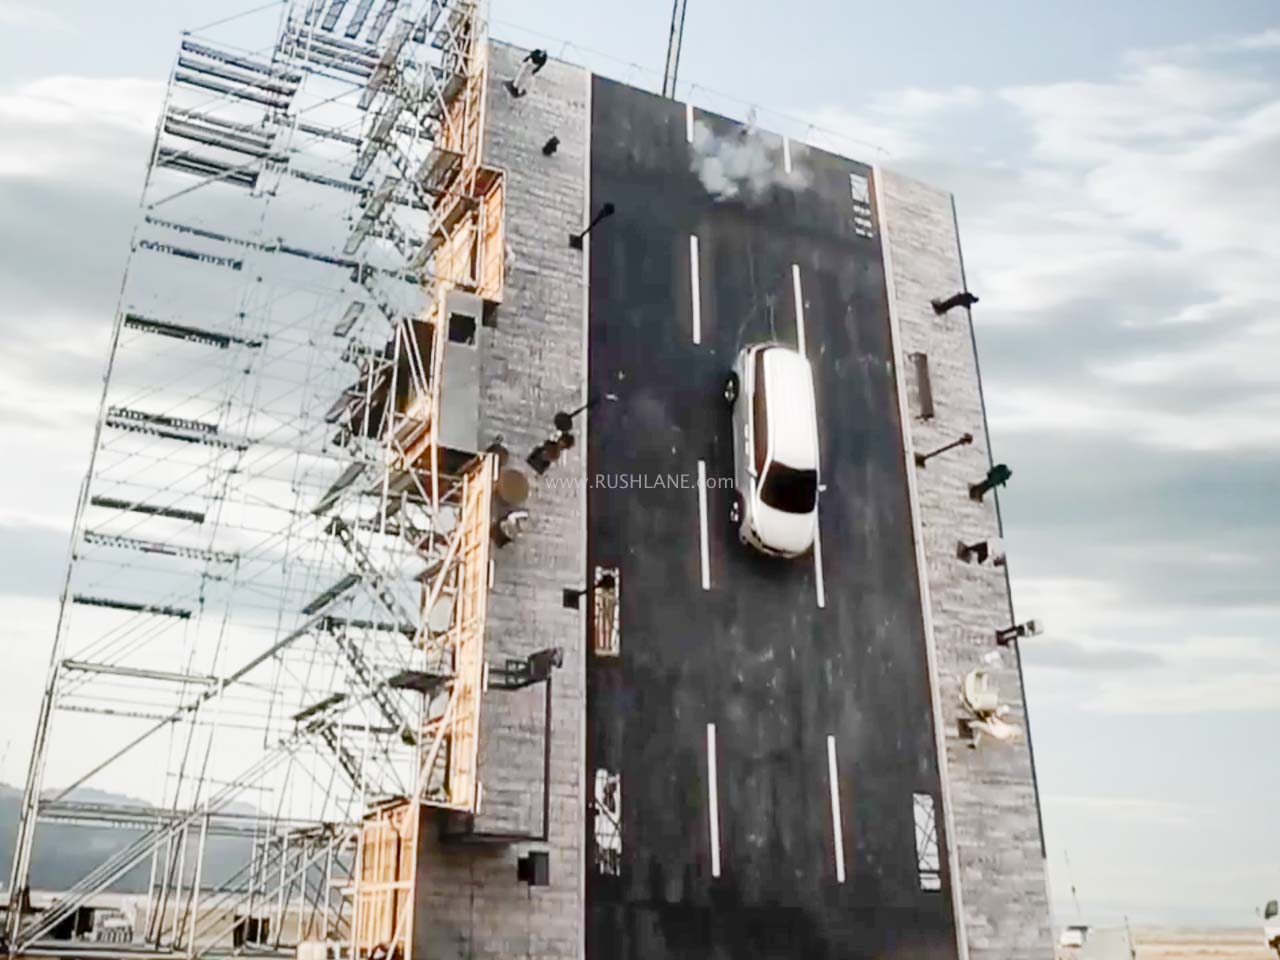 Kia Carnival dropped vertically from 42 feet in unique crash test – Video